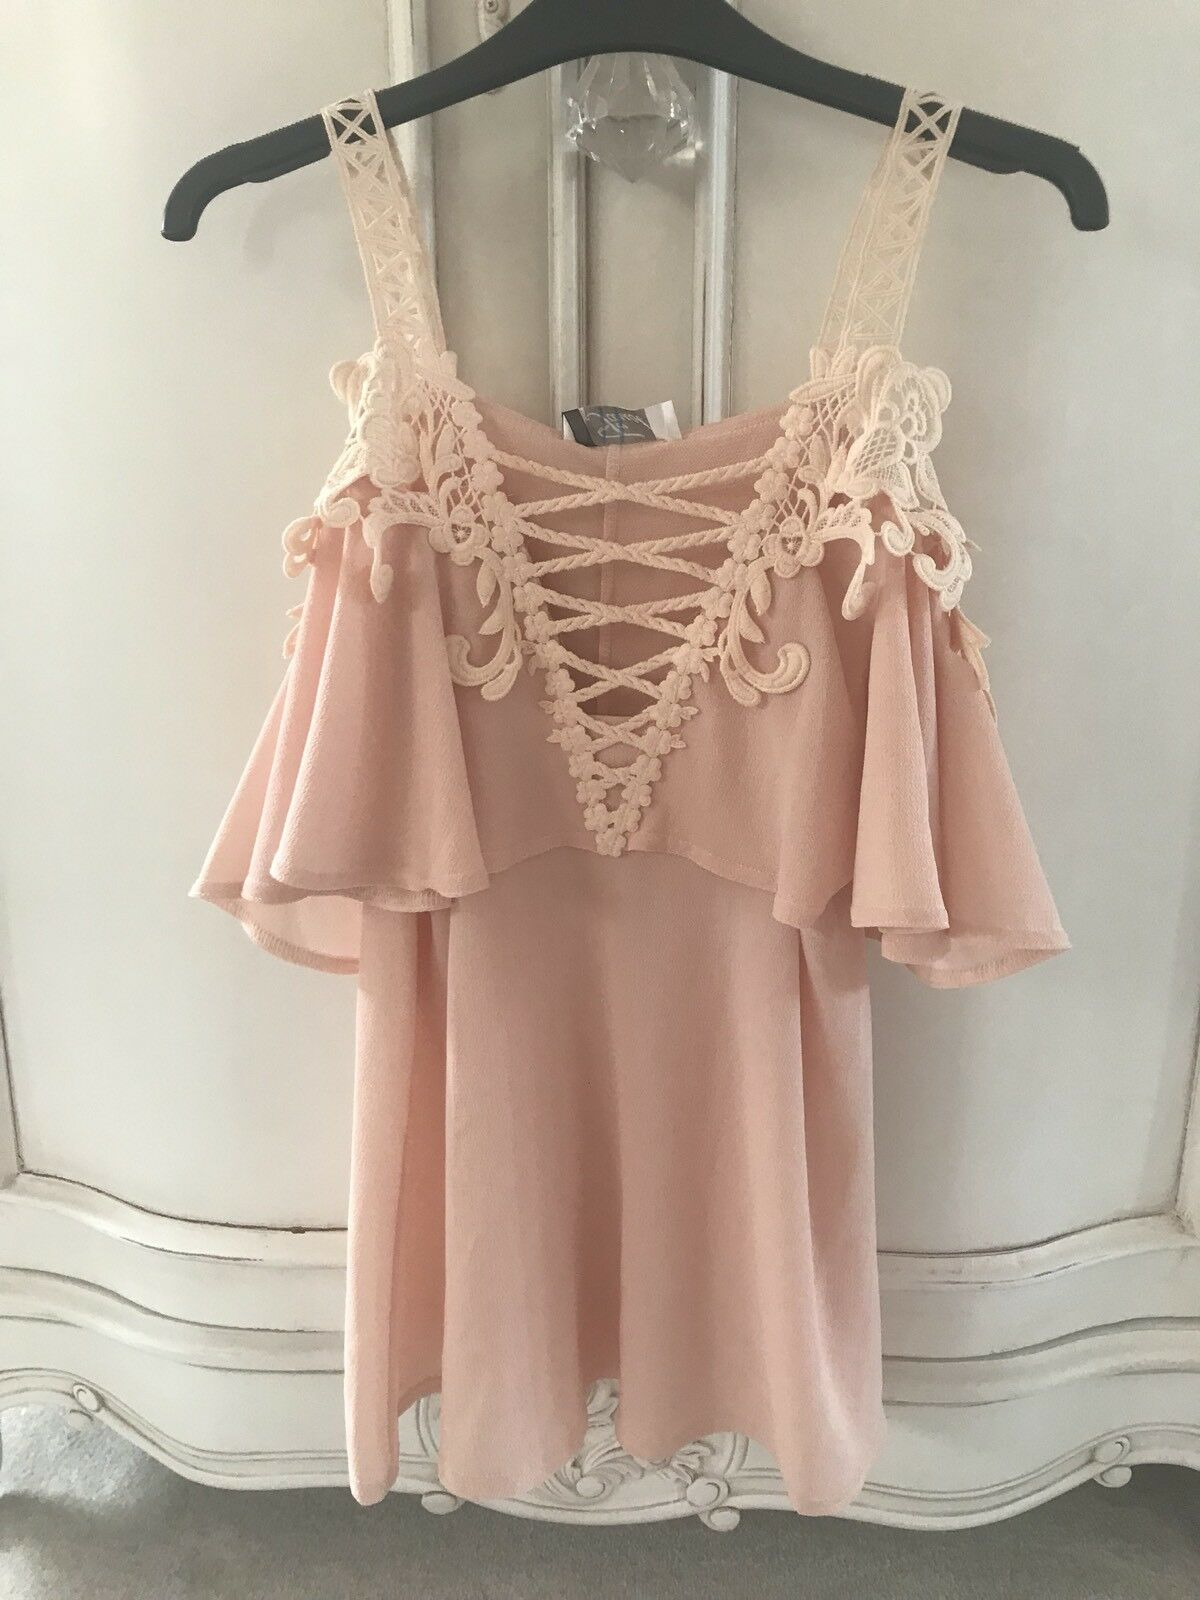 BNWT FAUST LADIES PEACH LACE OFF SHOULDER TOP Größe SMALL